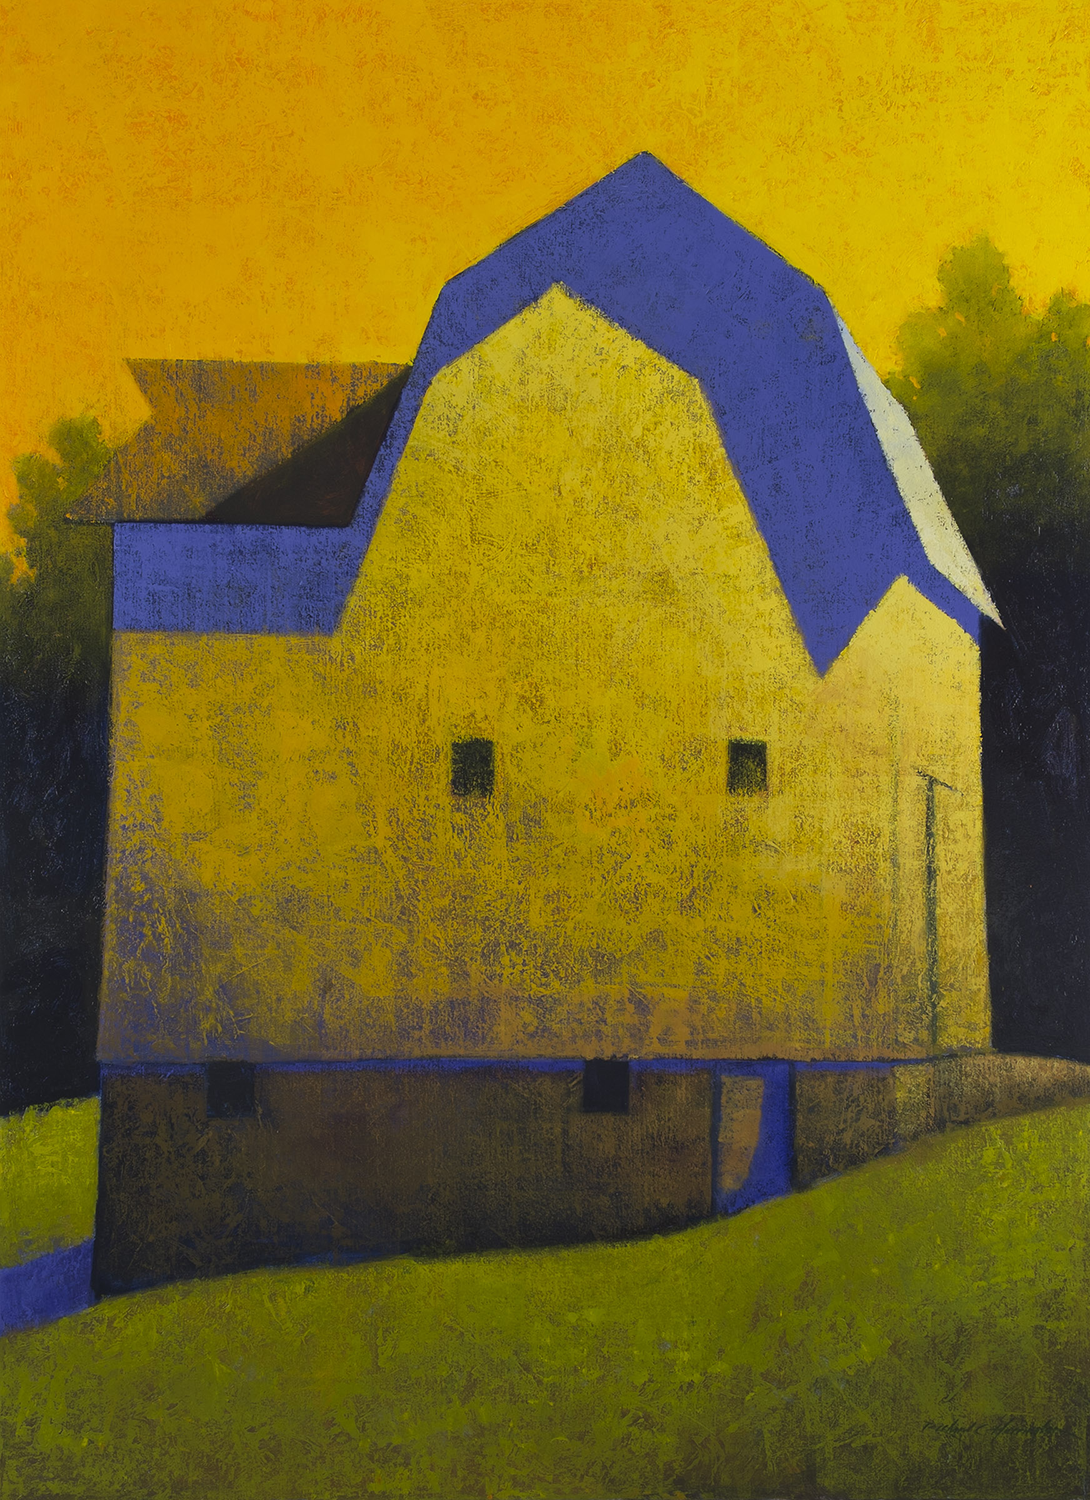 Evensong, oil on canvas, 60 x 48 inches. Private collection.